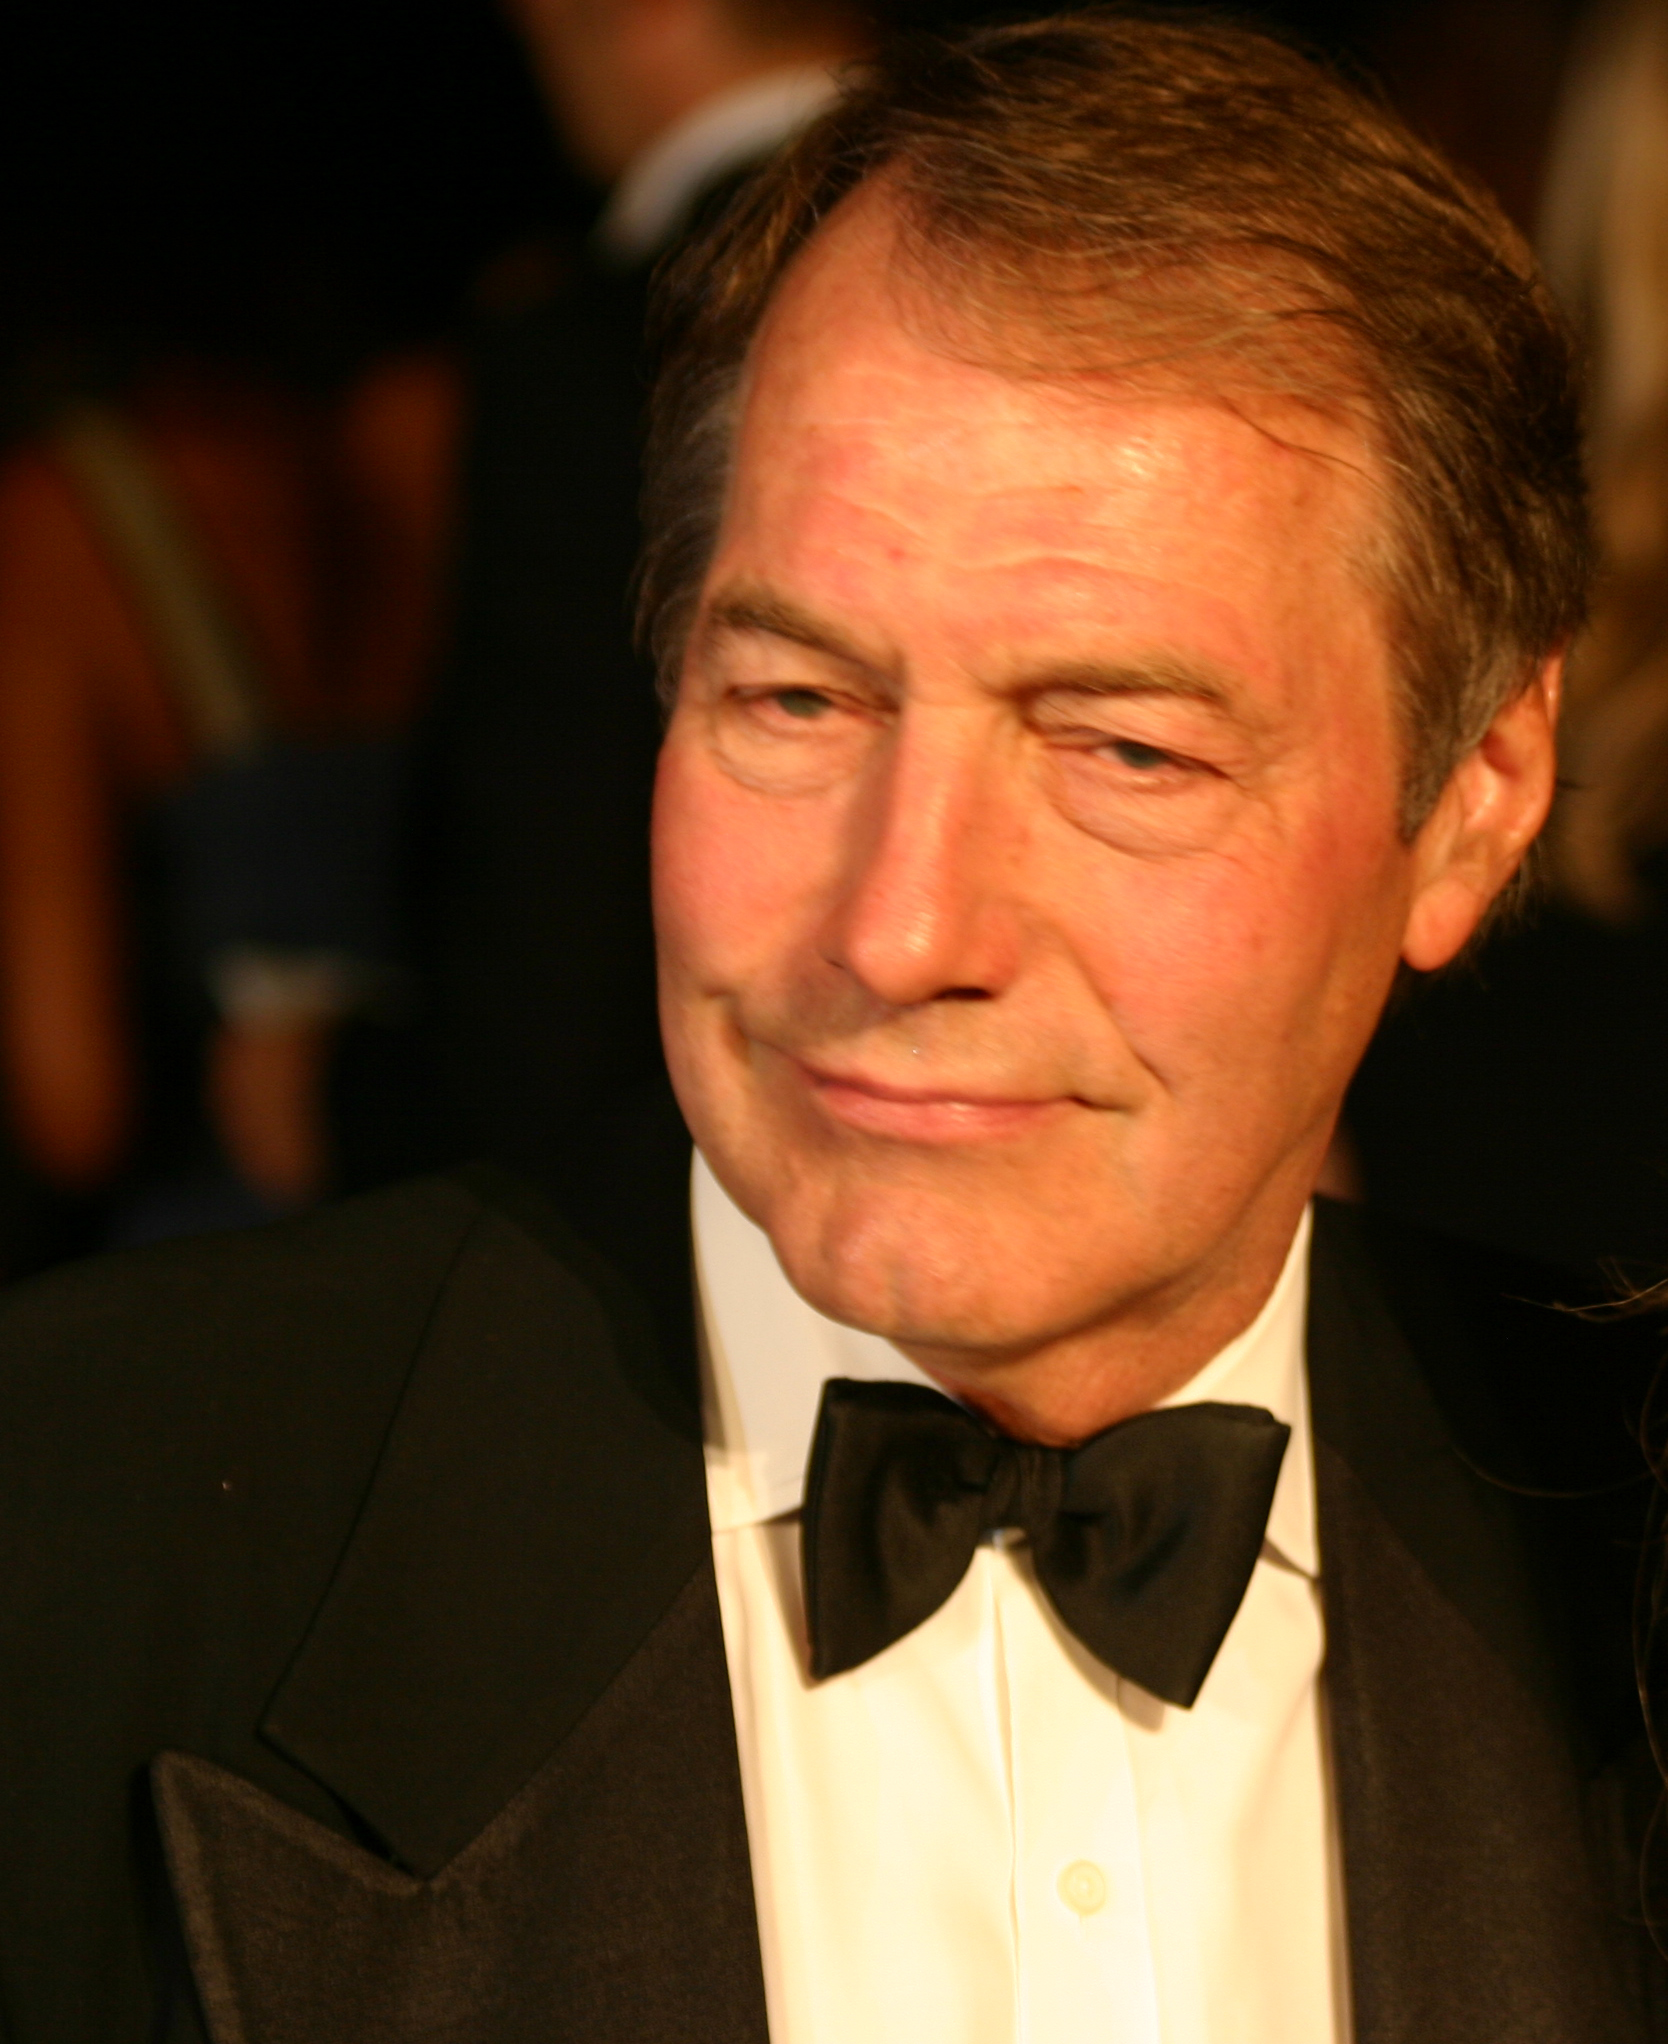 a rose for charlie After being accused of years of sexual misconduct the consequences for charlie rose were swift: cbs fired him, pbs dropped him.